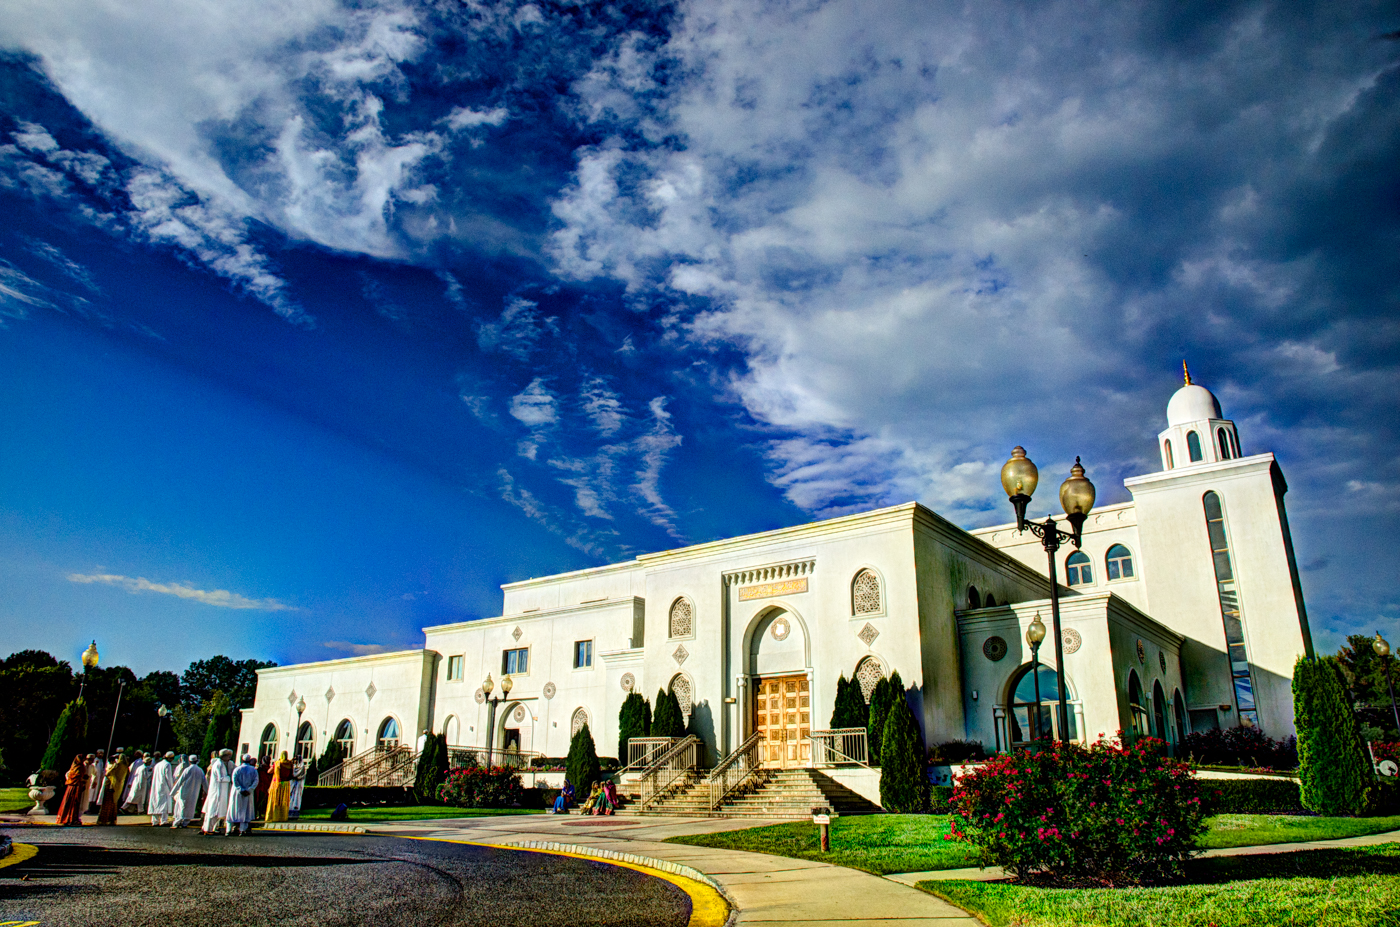 masjid-us-zainy-muslim-new-jersey-wedding-hdri-njohnston-photography-www.njohnst